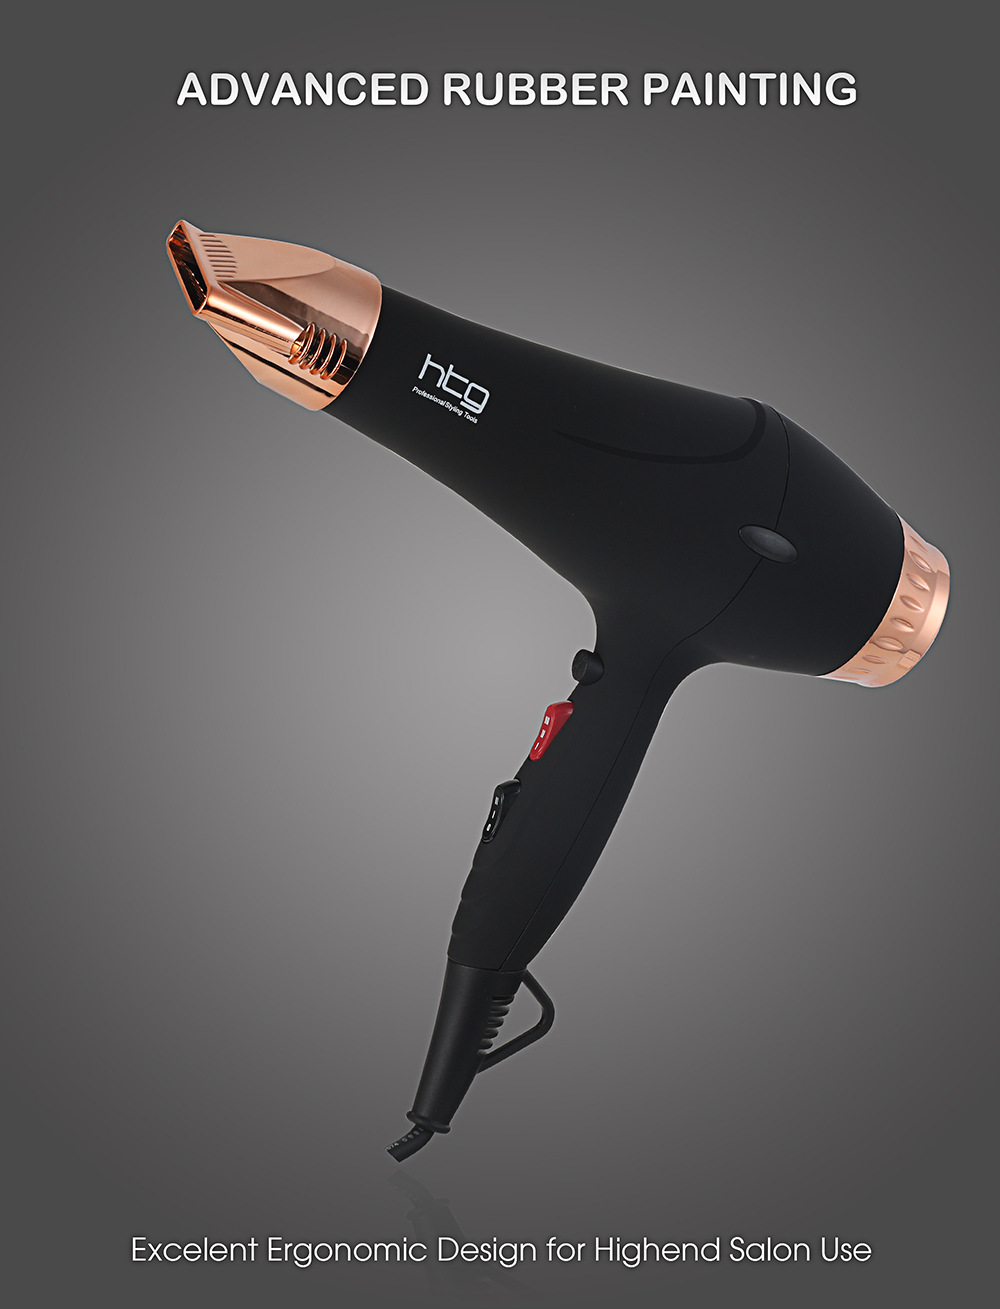 Russia Ship HTG 2300W powerful professional Hair Dryer Negative ion Ionic Infrared Blow Dryer EU Plug